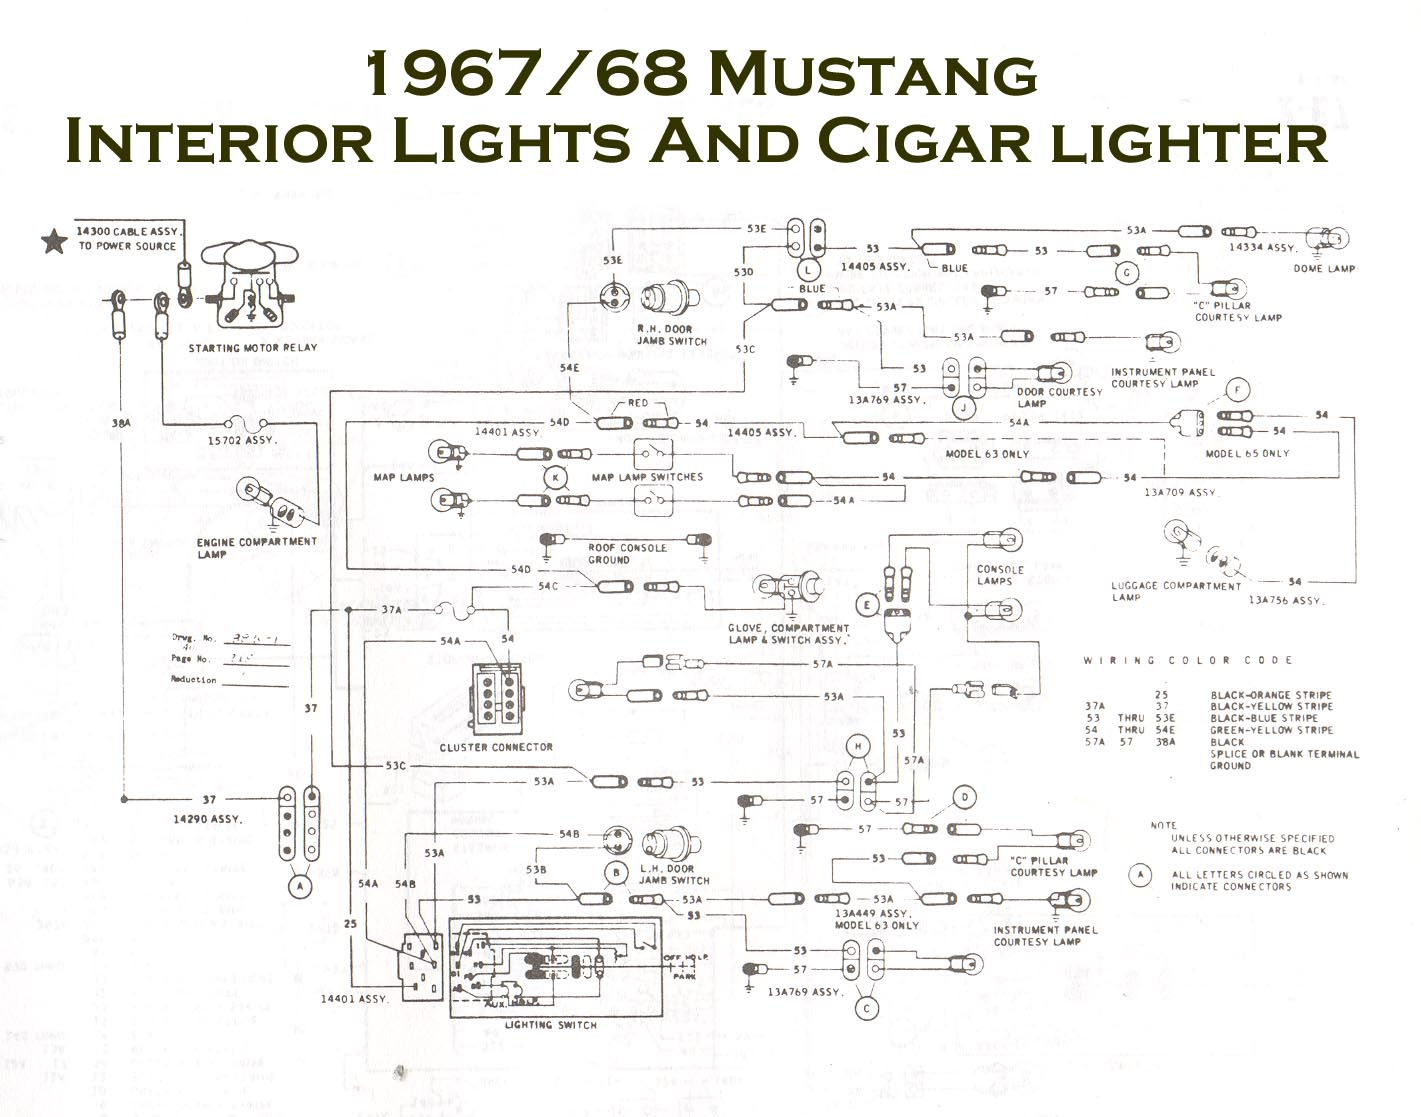 Vintage Mustang Wiring Diagrams Peterbilt Light Diagram 1967 68 Console